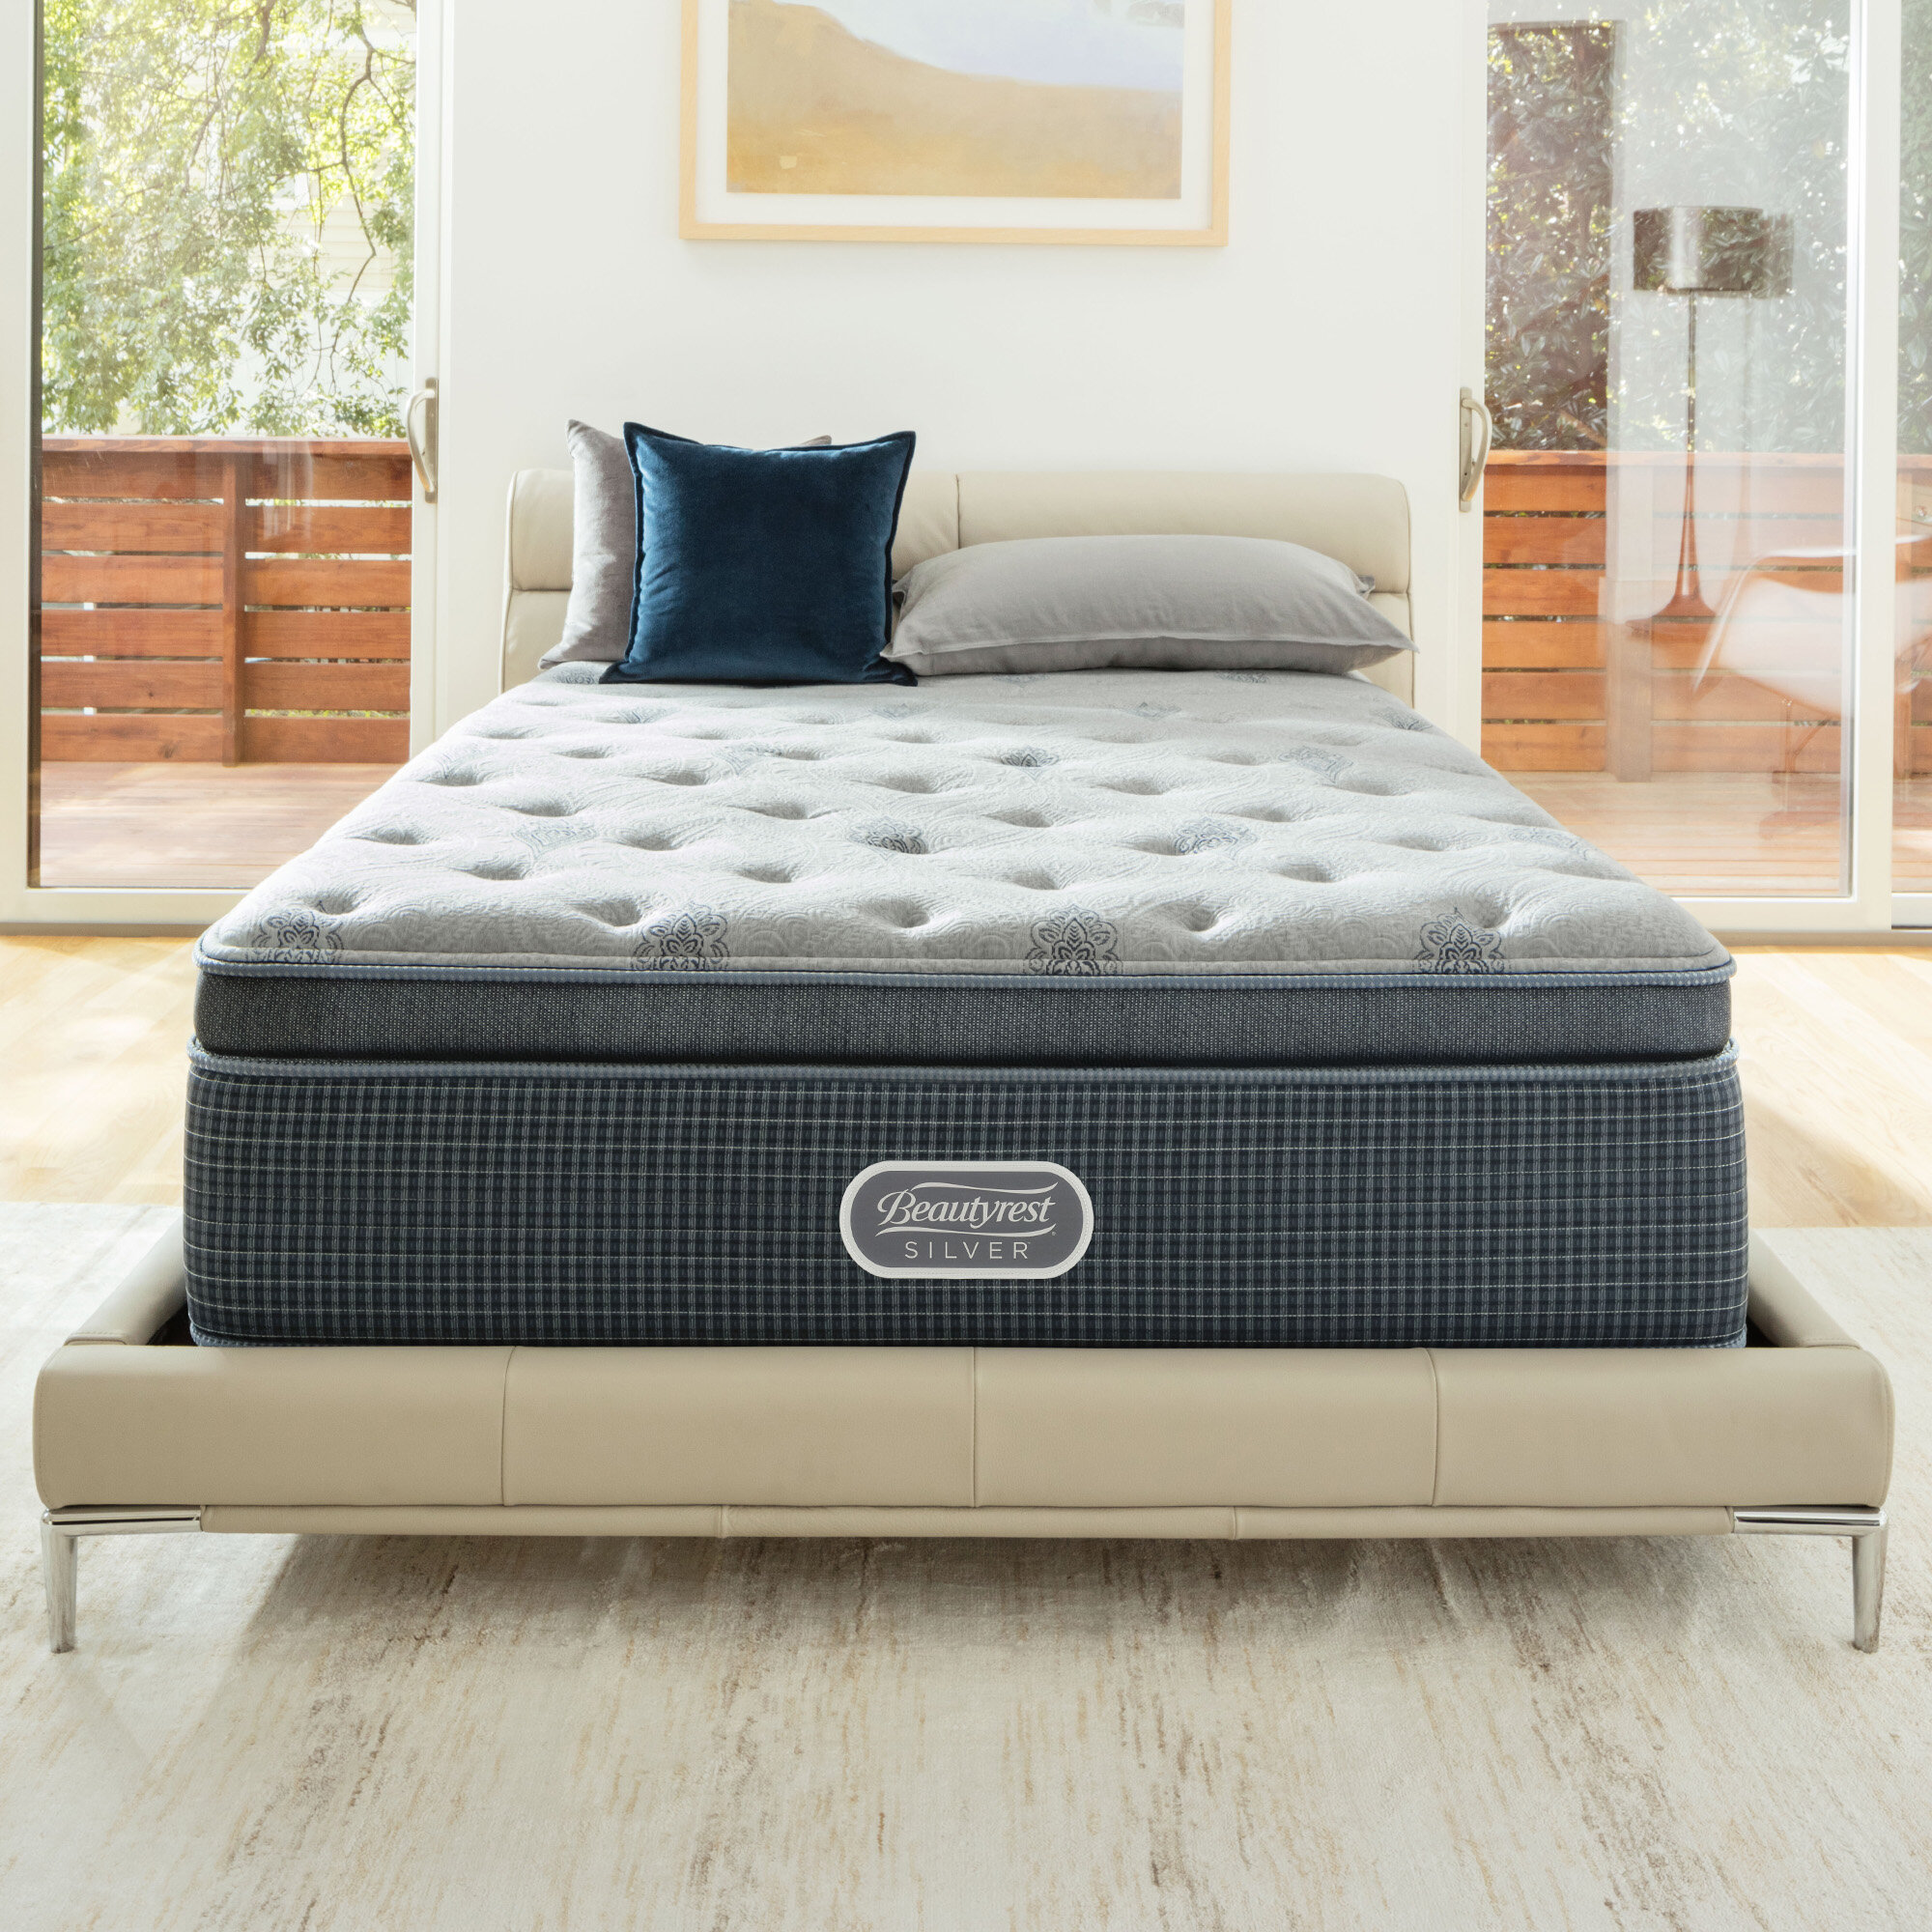 valley q plush plpt pillow beautysleep shop city silo mattress sun top topper sleep simmons